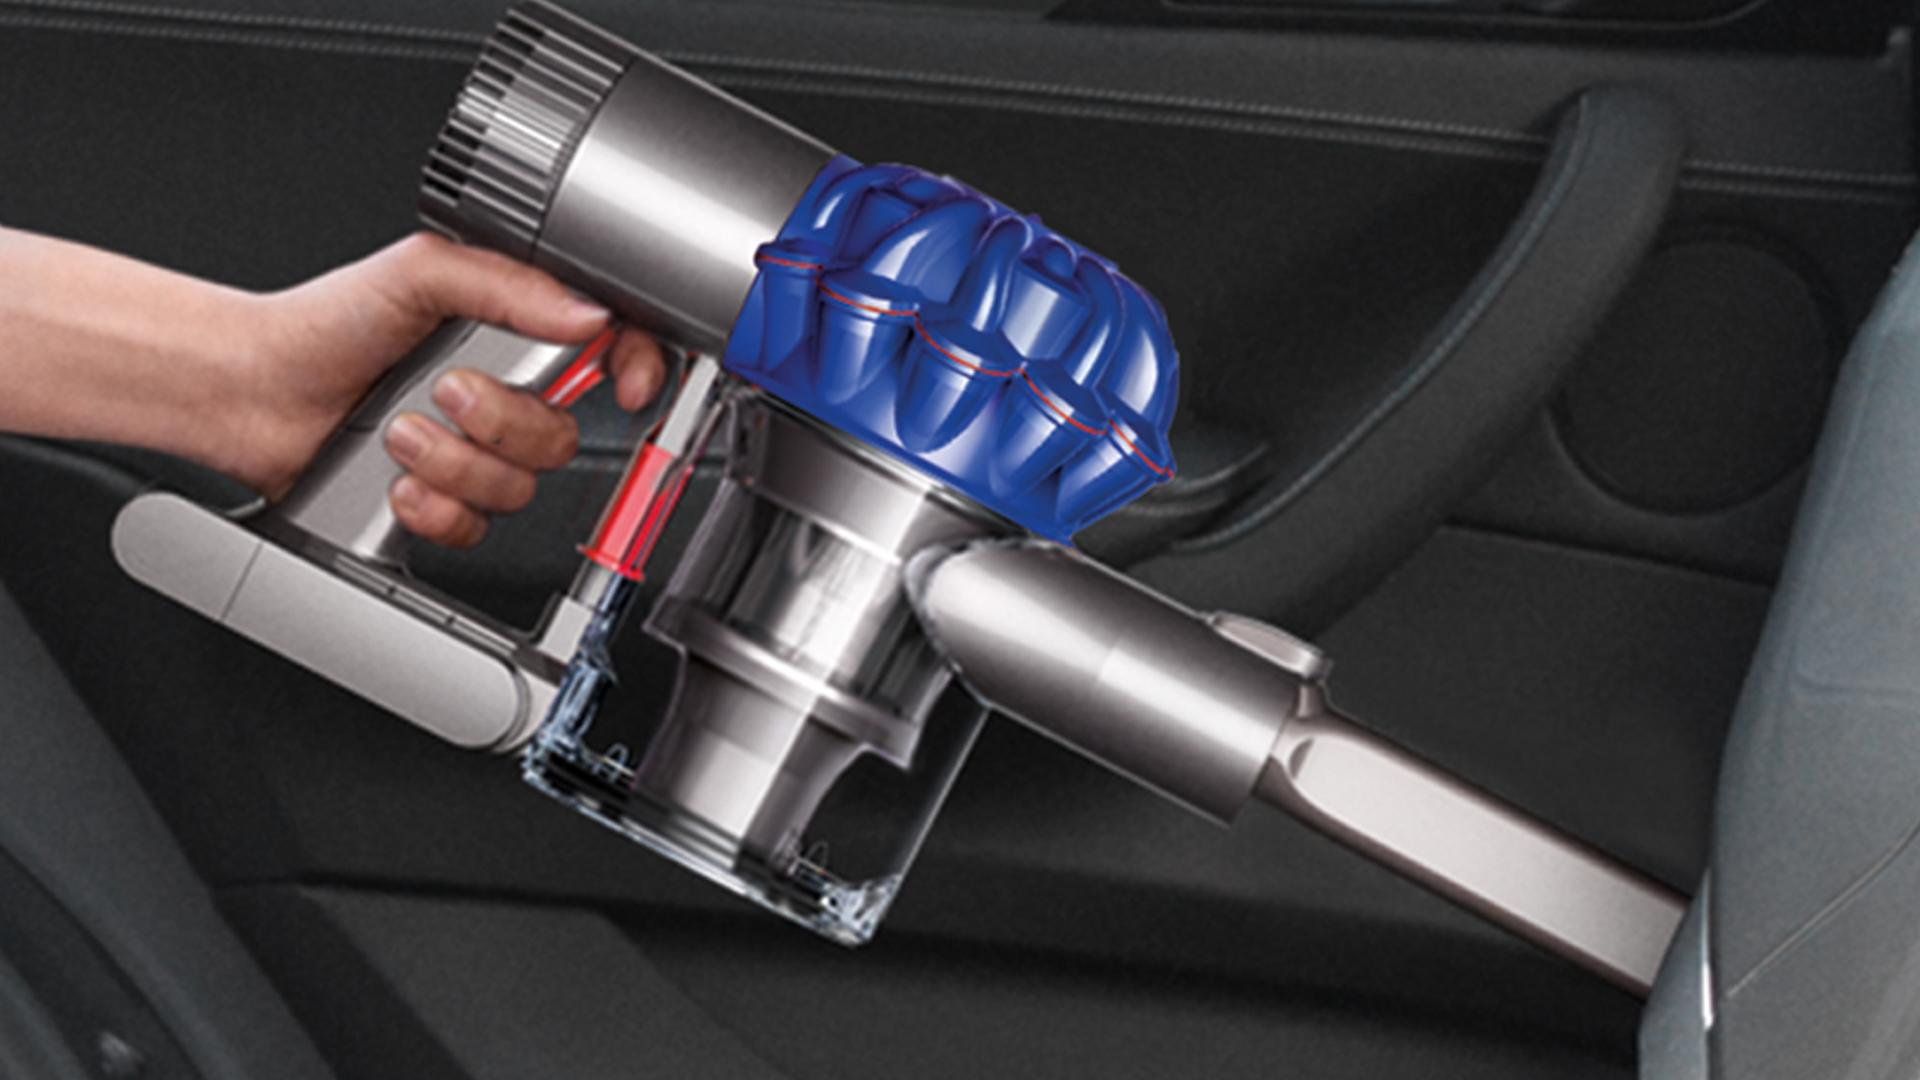 Image of a Dyson handheld vacuum